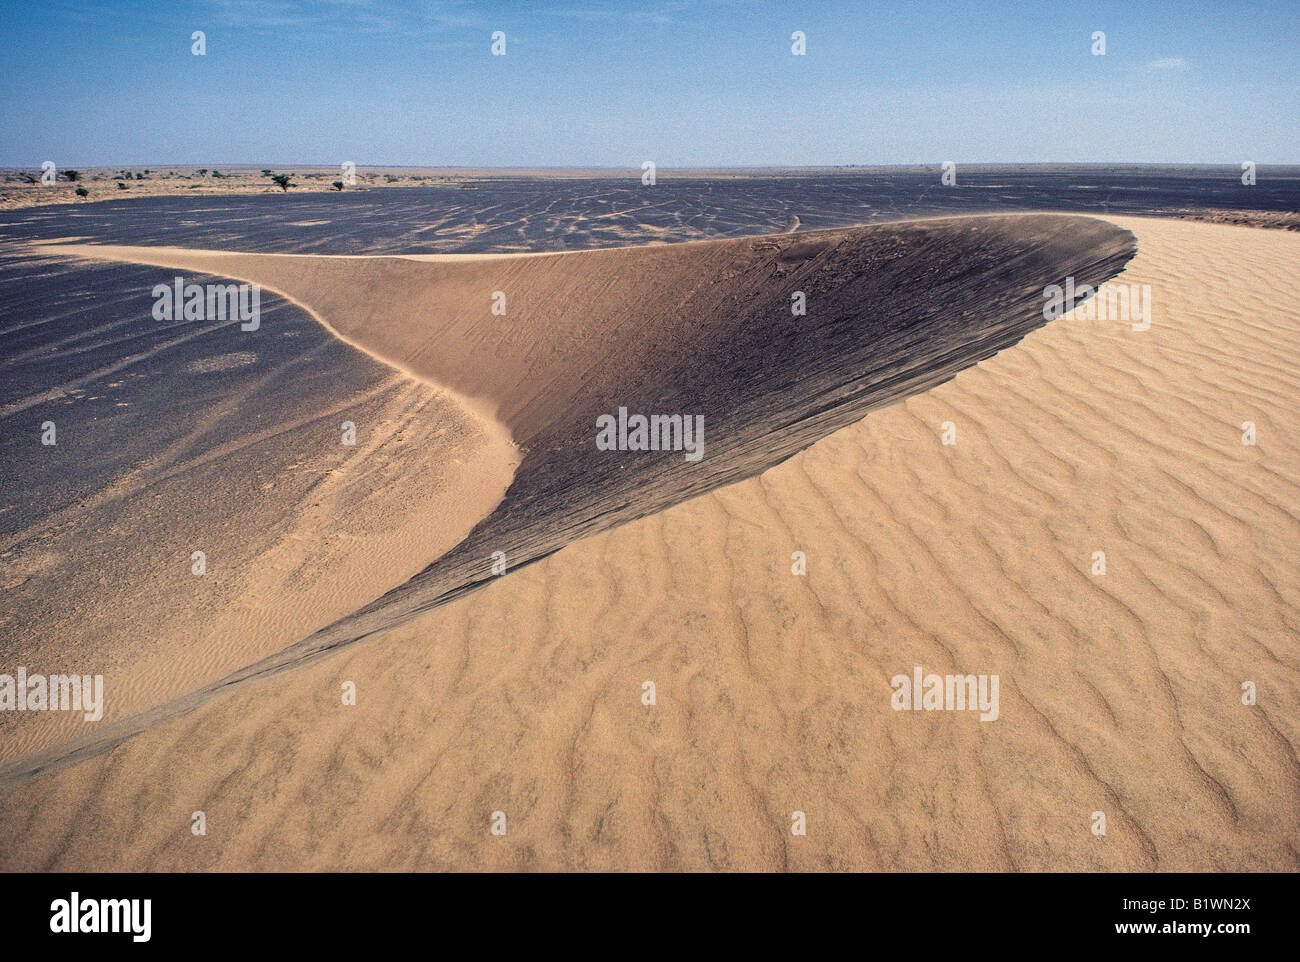 Barchan or crescent shaped transverse sand dunes in stony ...